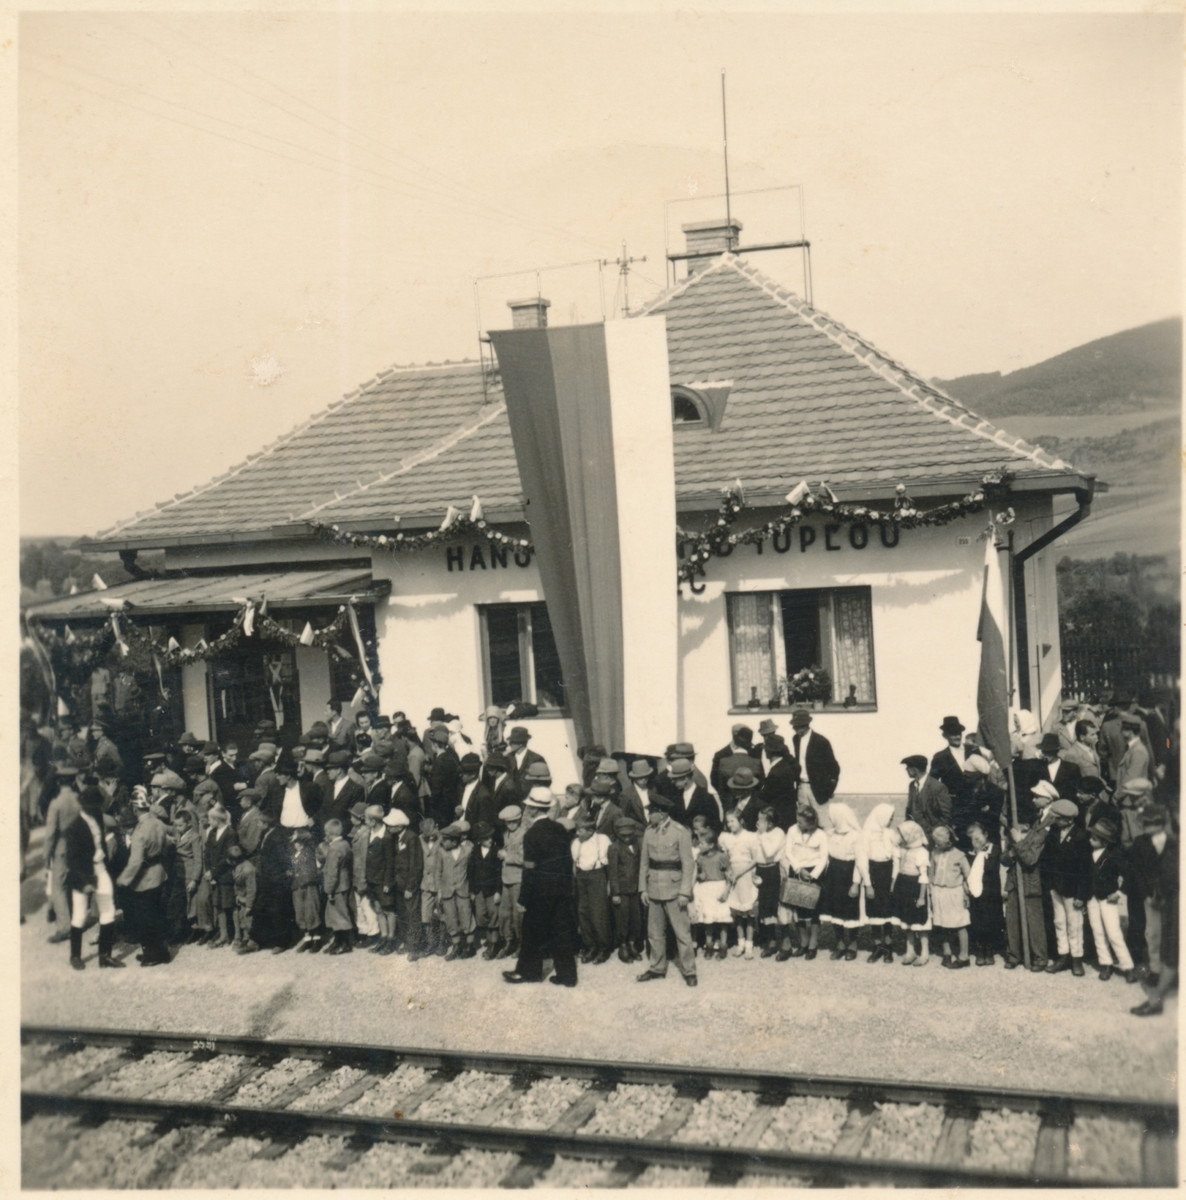 Residents of the town of Hanushovce wait at the train station to greet the arrival of President Jozef Tiiso.